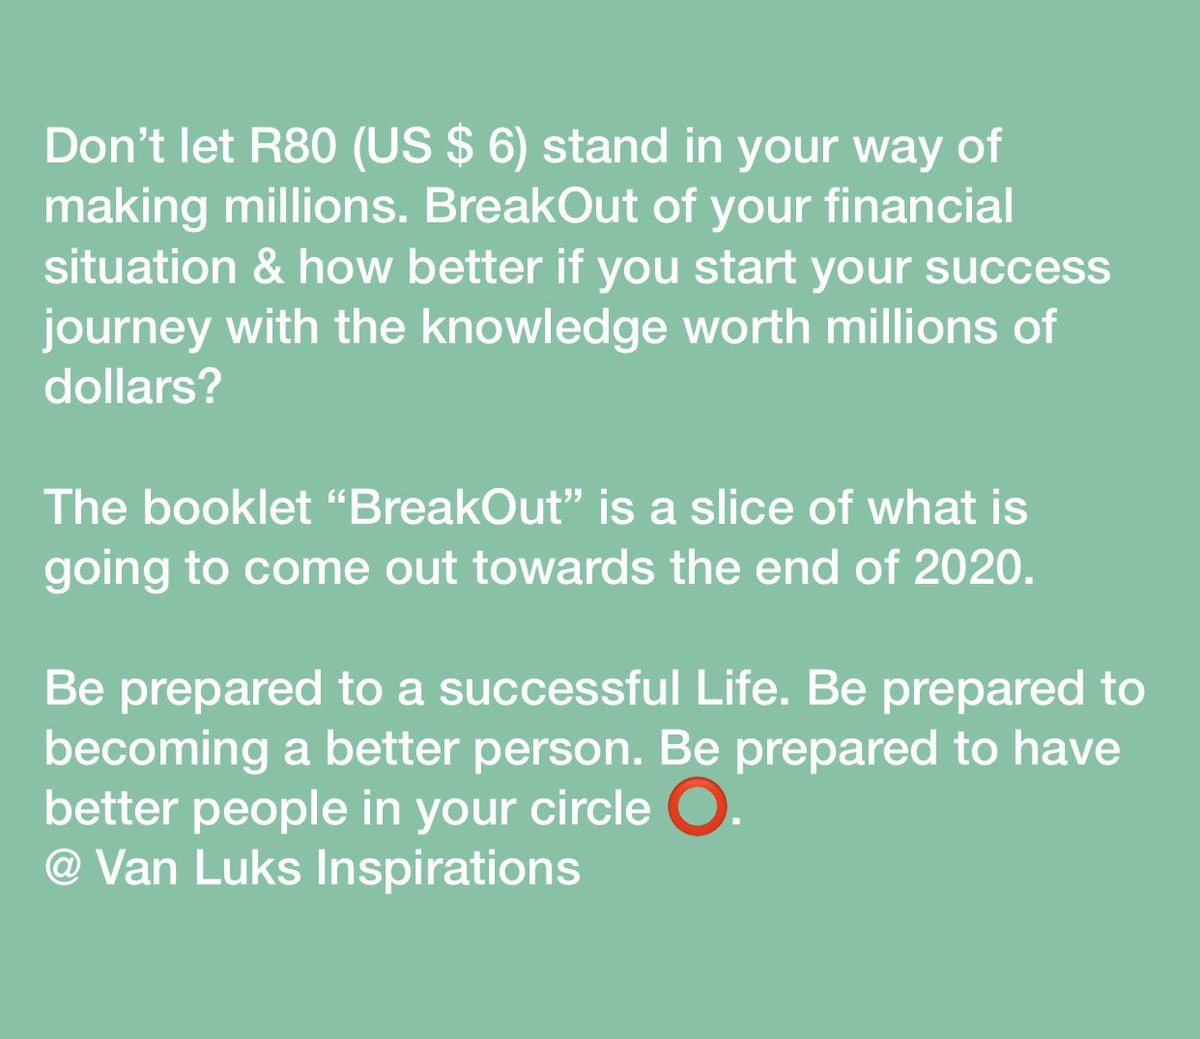 Don't let R80 (US $ 6) stand in your way of making millions. BreakOut of your financial situation & how better if you start your success journey with the knowledge worth millions of dollars? Be prepared.#FinaLit #Success #FinancialLiteracy #WealthyMindset #WealthyLifestyle pic.twitter.com/bGSK64OMTk